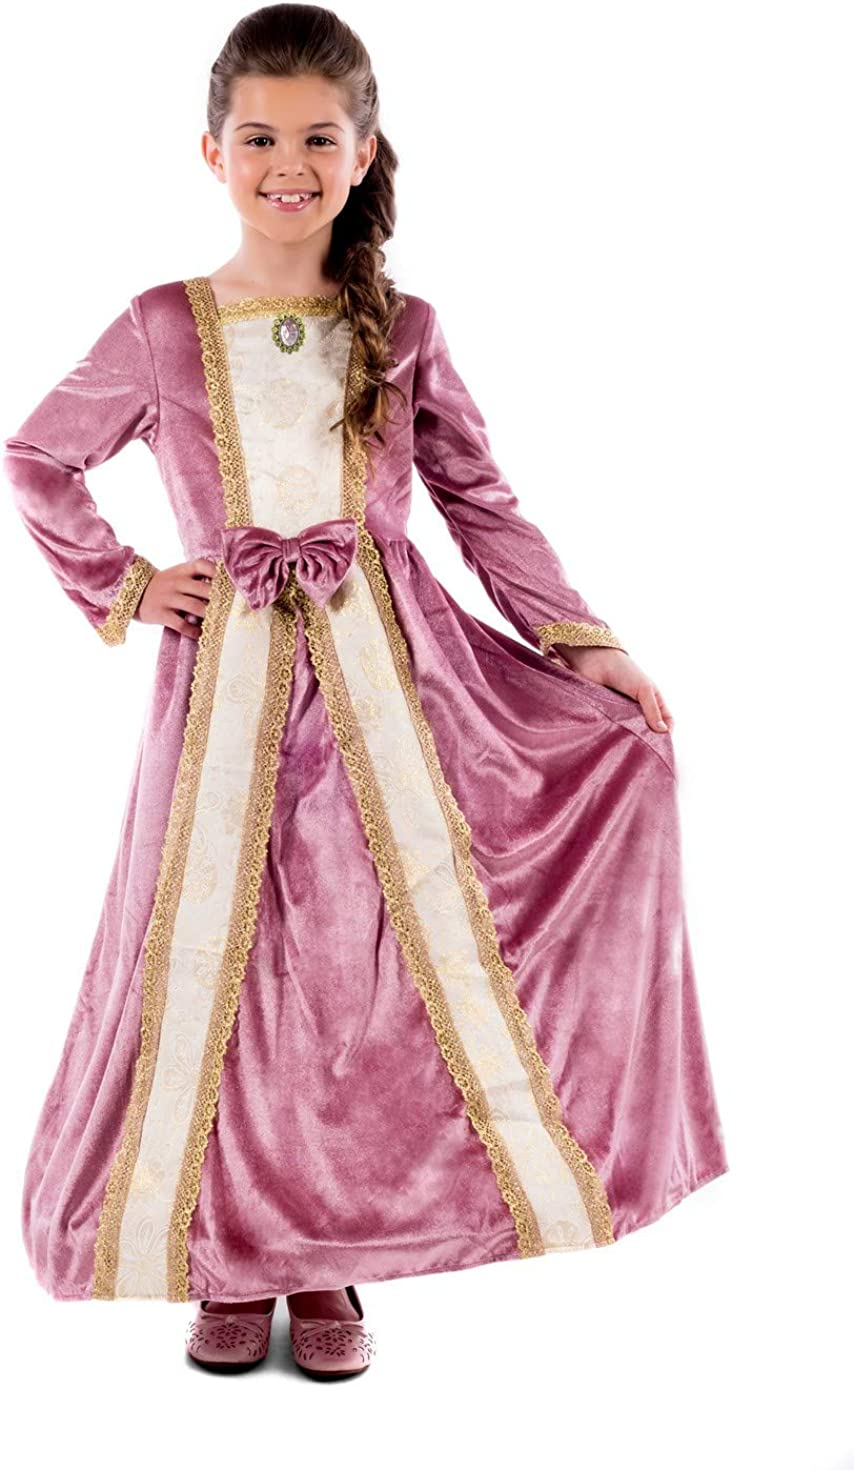 Kids Deluxe Princess Costume Girls Pink Royal Gown Queen Dress Outfit